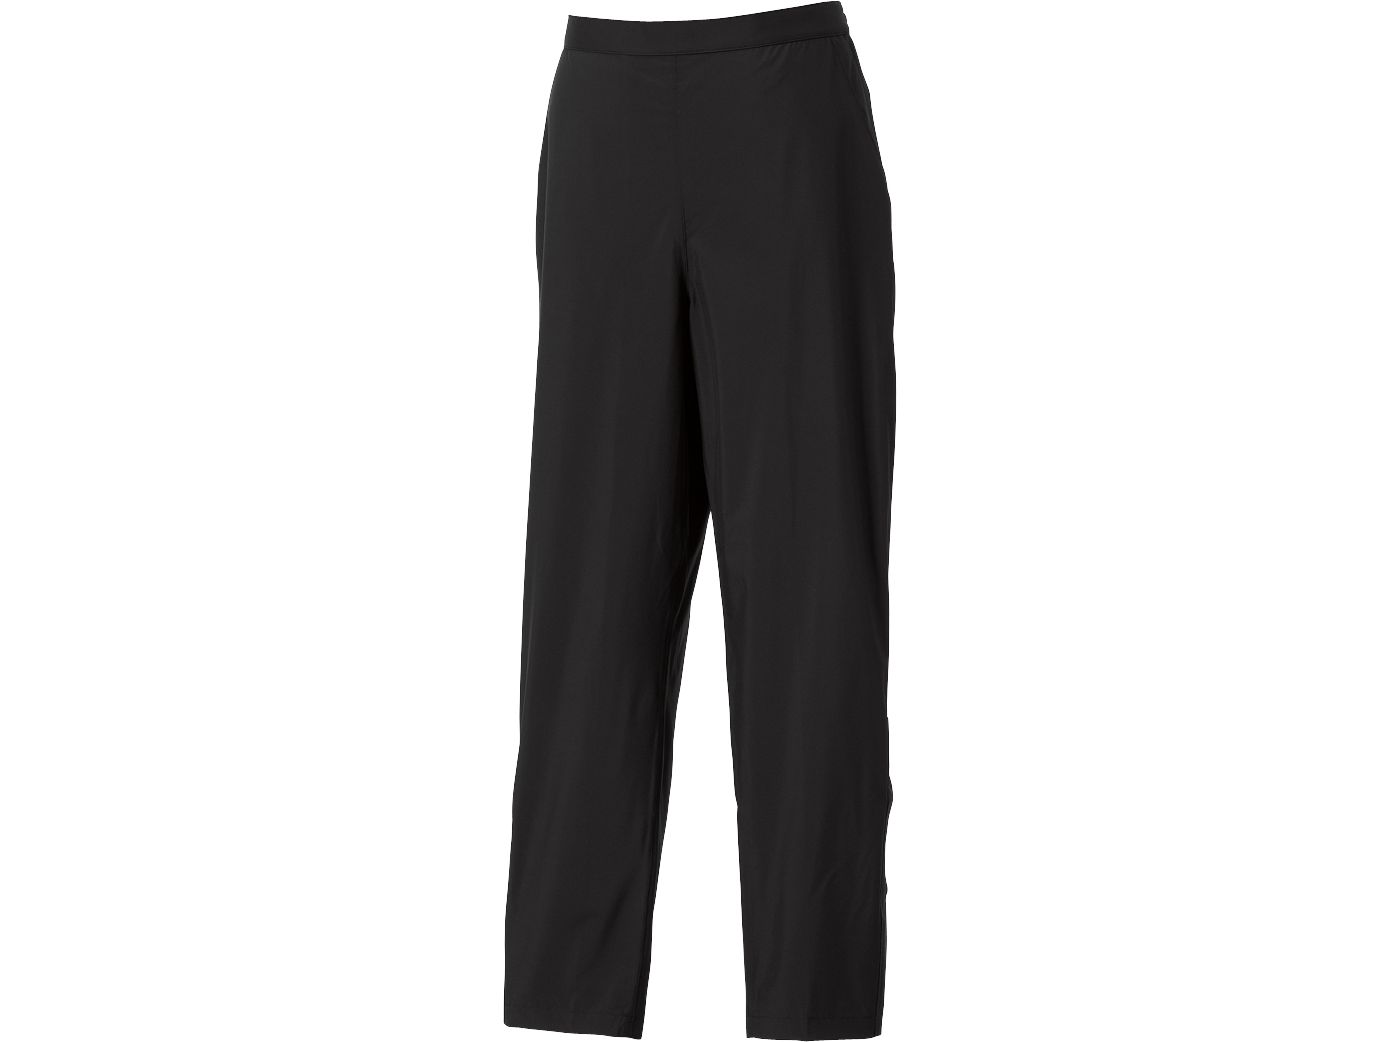 FootJoy Women's Performance Light Pants